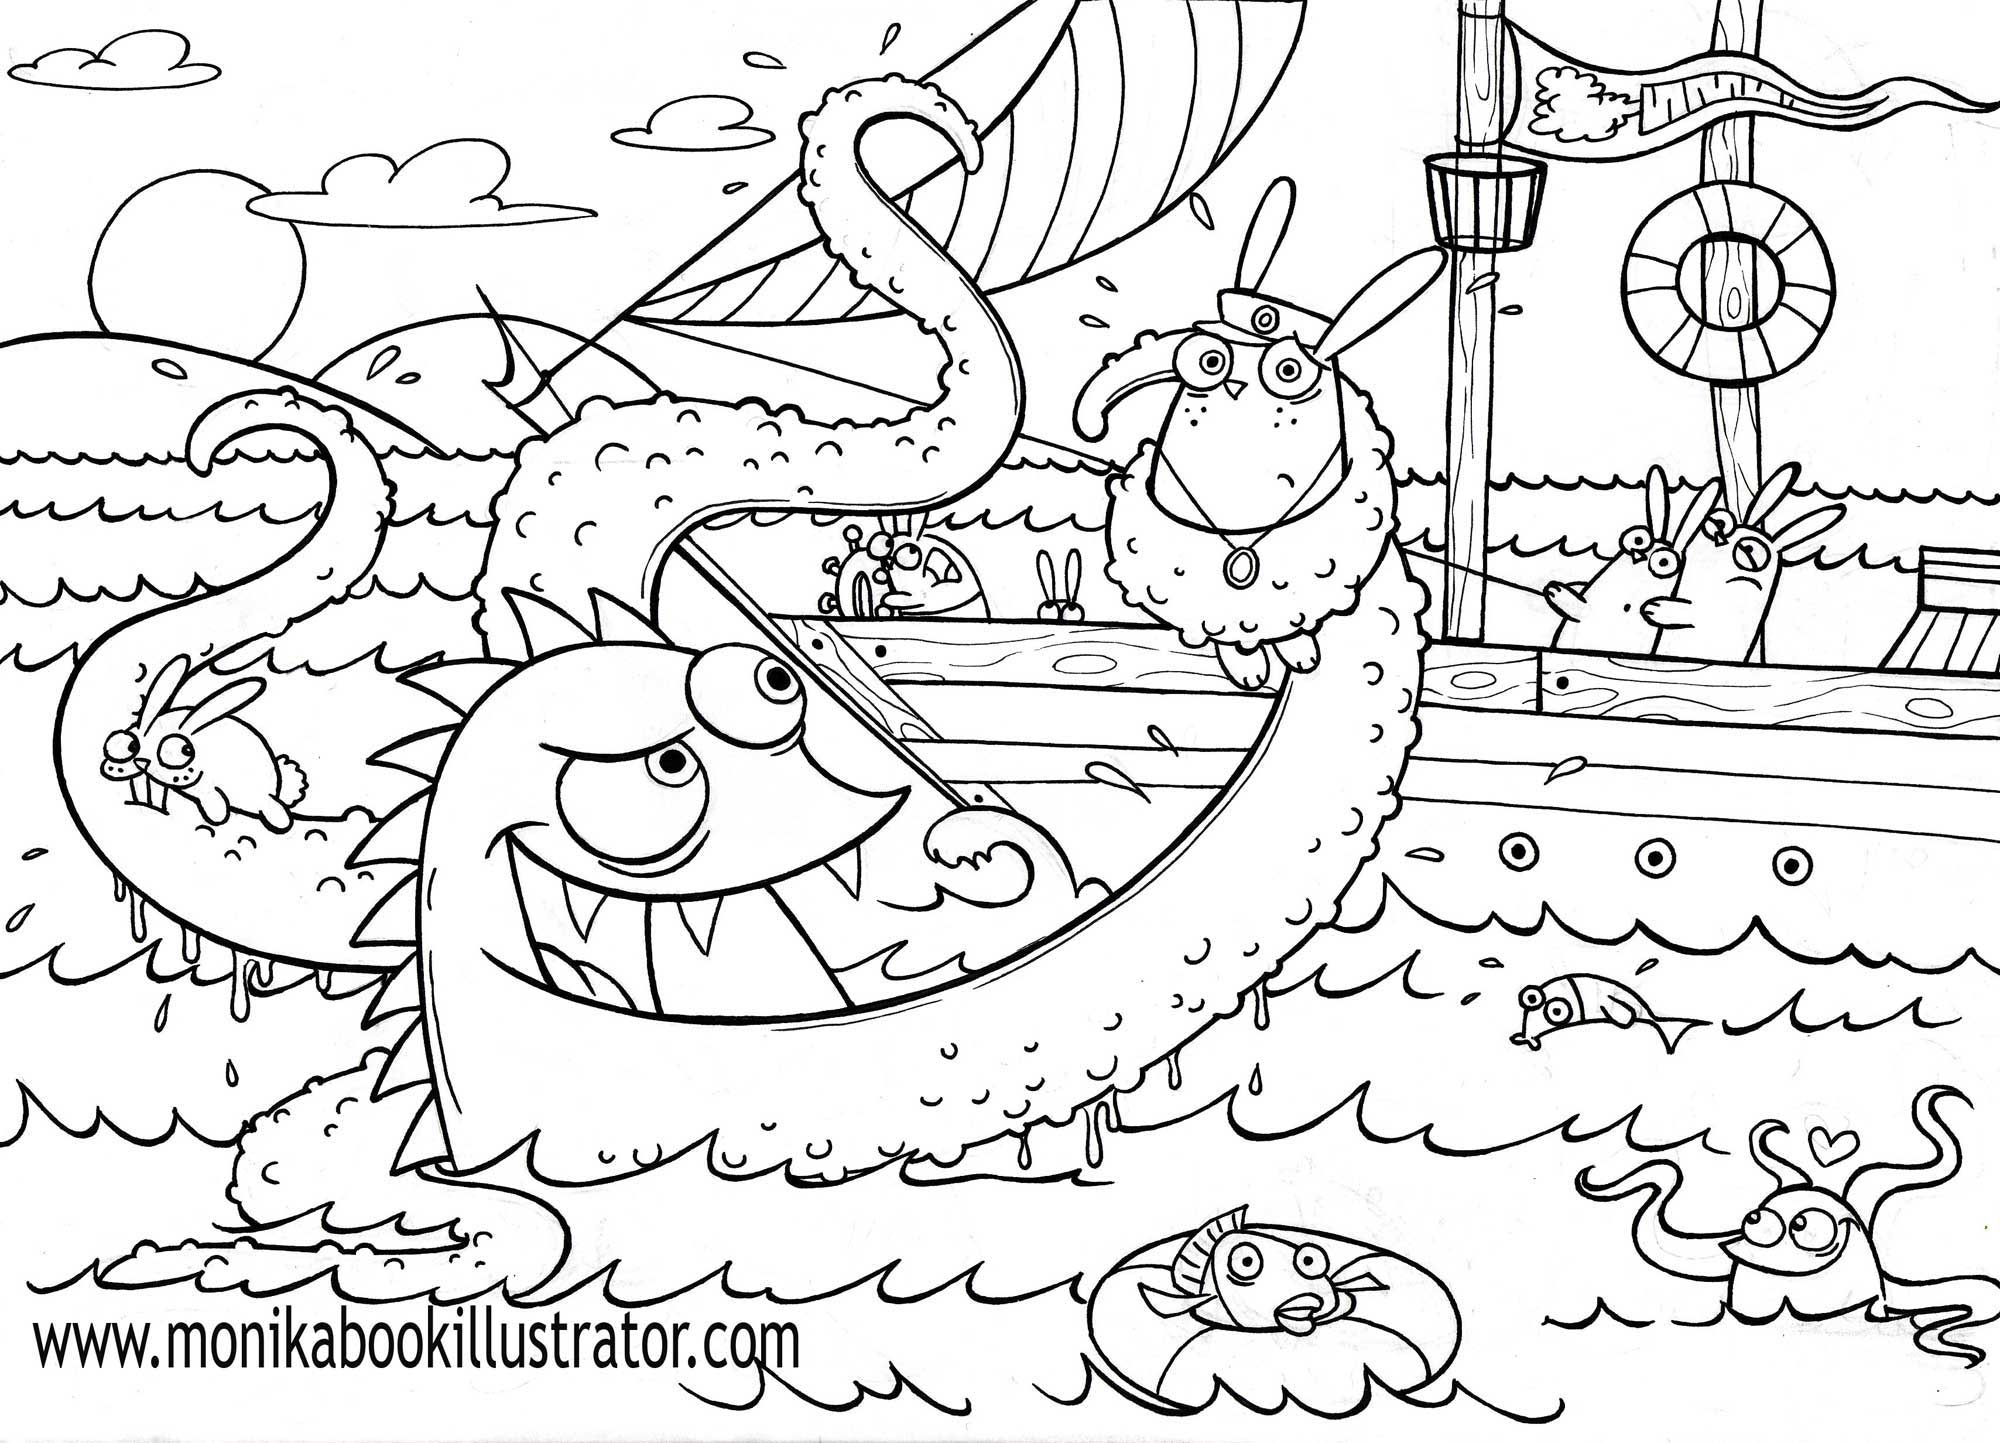 Sea Monster Coloring Pages 9 Sea Monster Coloring Pages Coloring Pages Coloringdrawingr